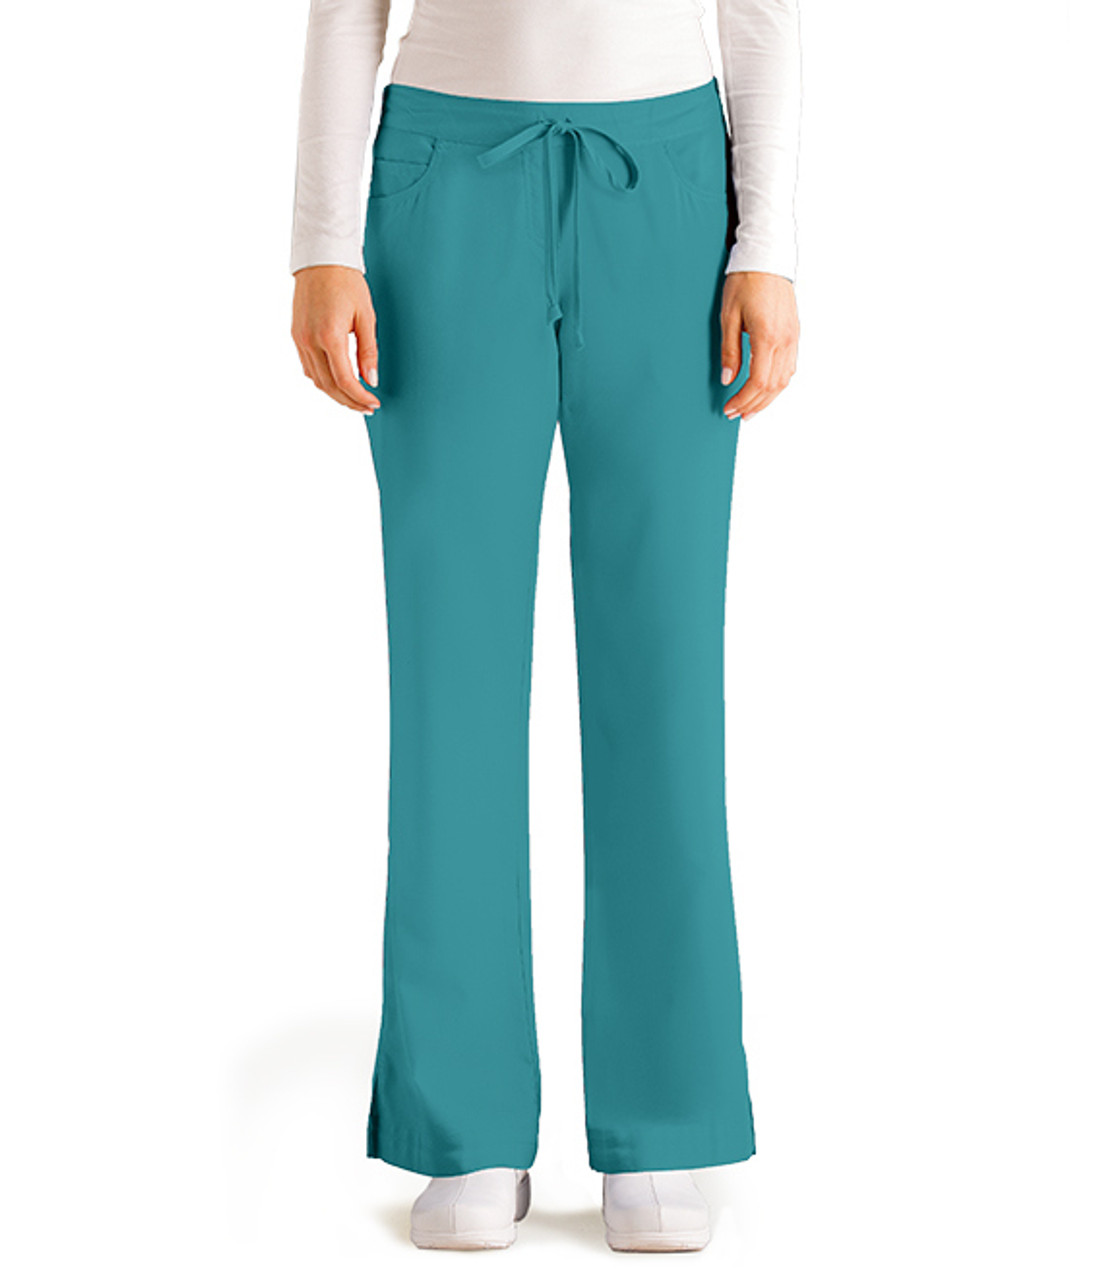 (4232) Grey's Anatomy 5 Pocket Drawstring Pant